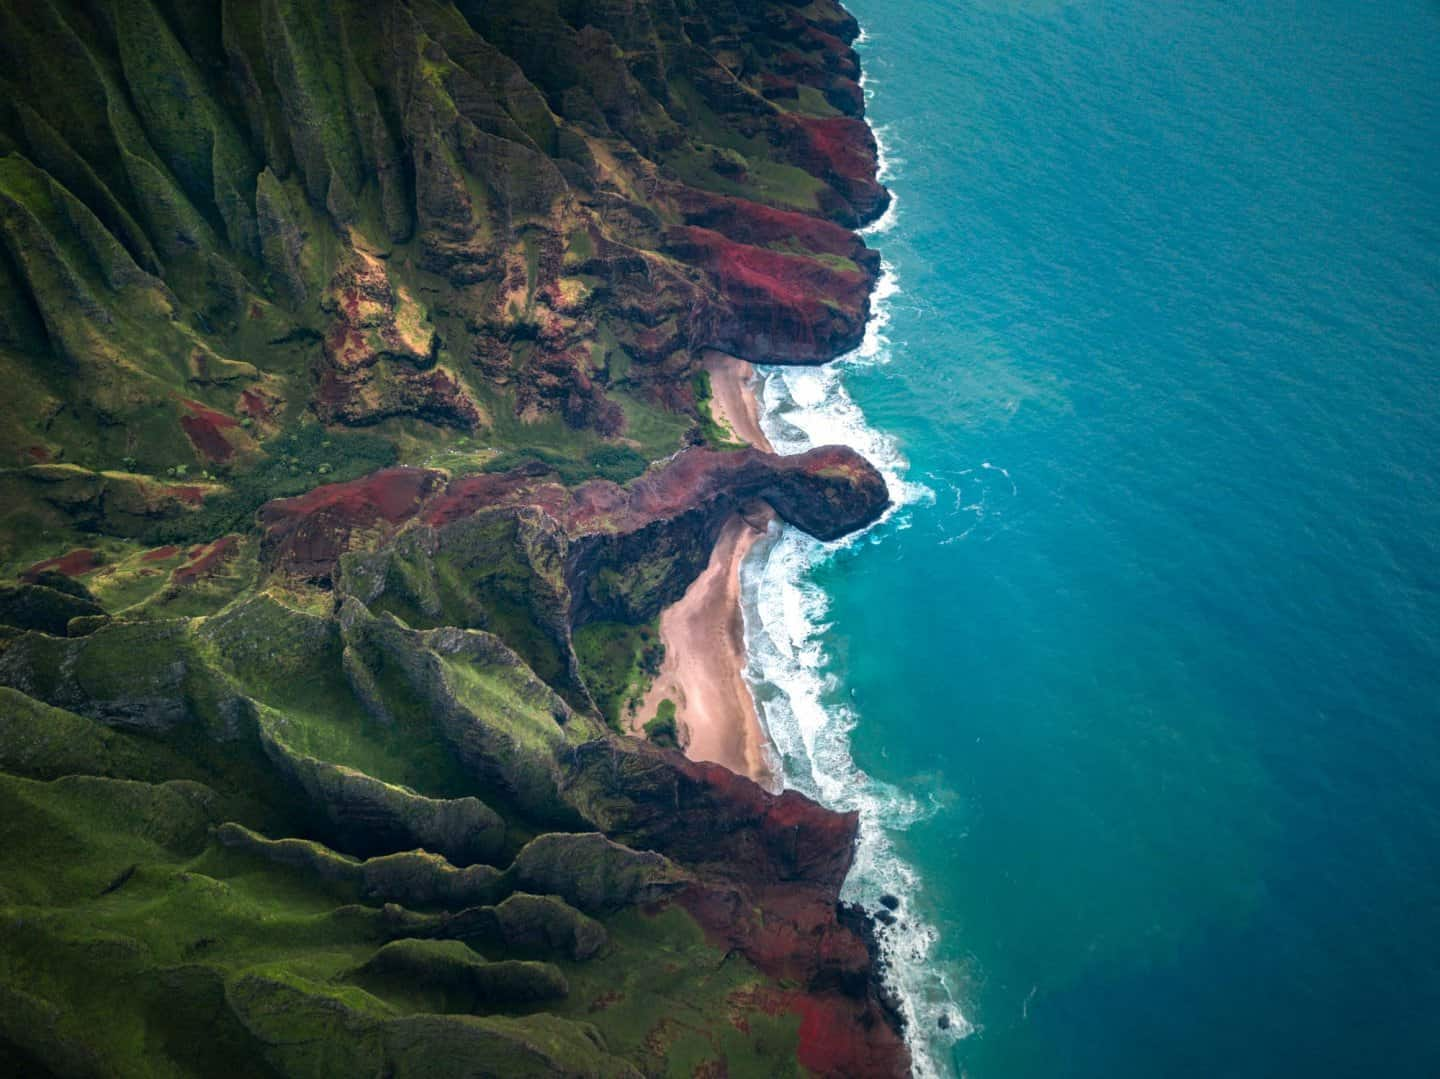 By land, sea, or sky, the opportunities for incredible Kauai landscape photography are endless.